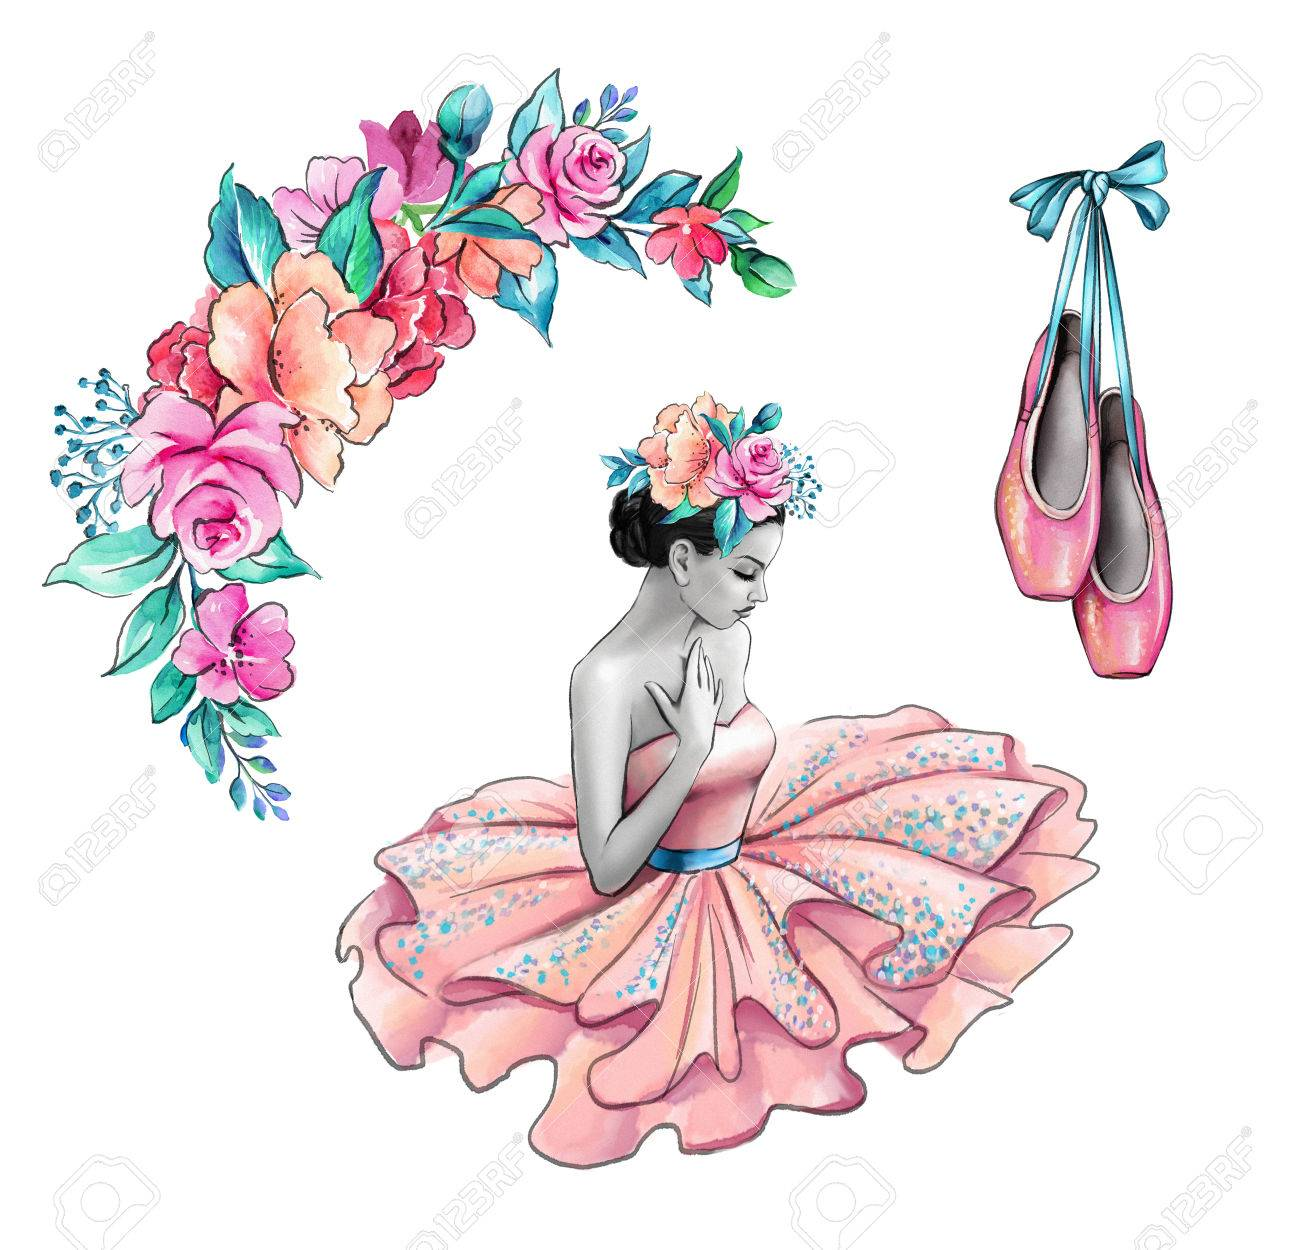 Watercolor illustration ballerina in pink dress flowers shoes illustration watercolor illustration ballerina in pink dress flowers shoes retro fashion accessories isolated on white background mightylinksfo